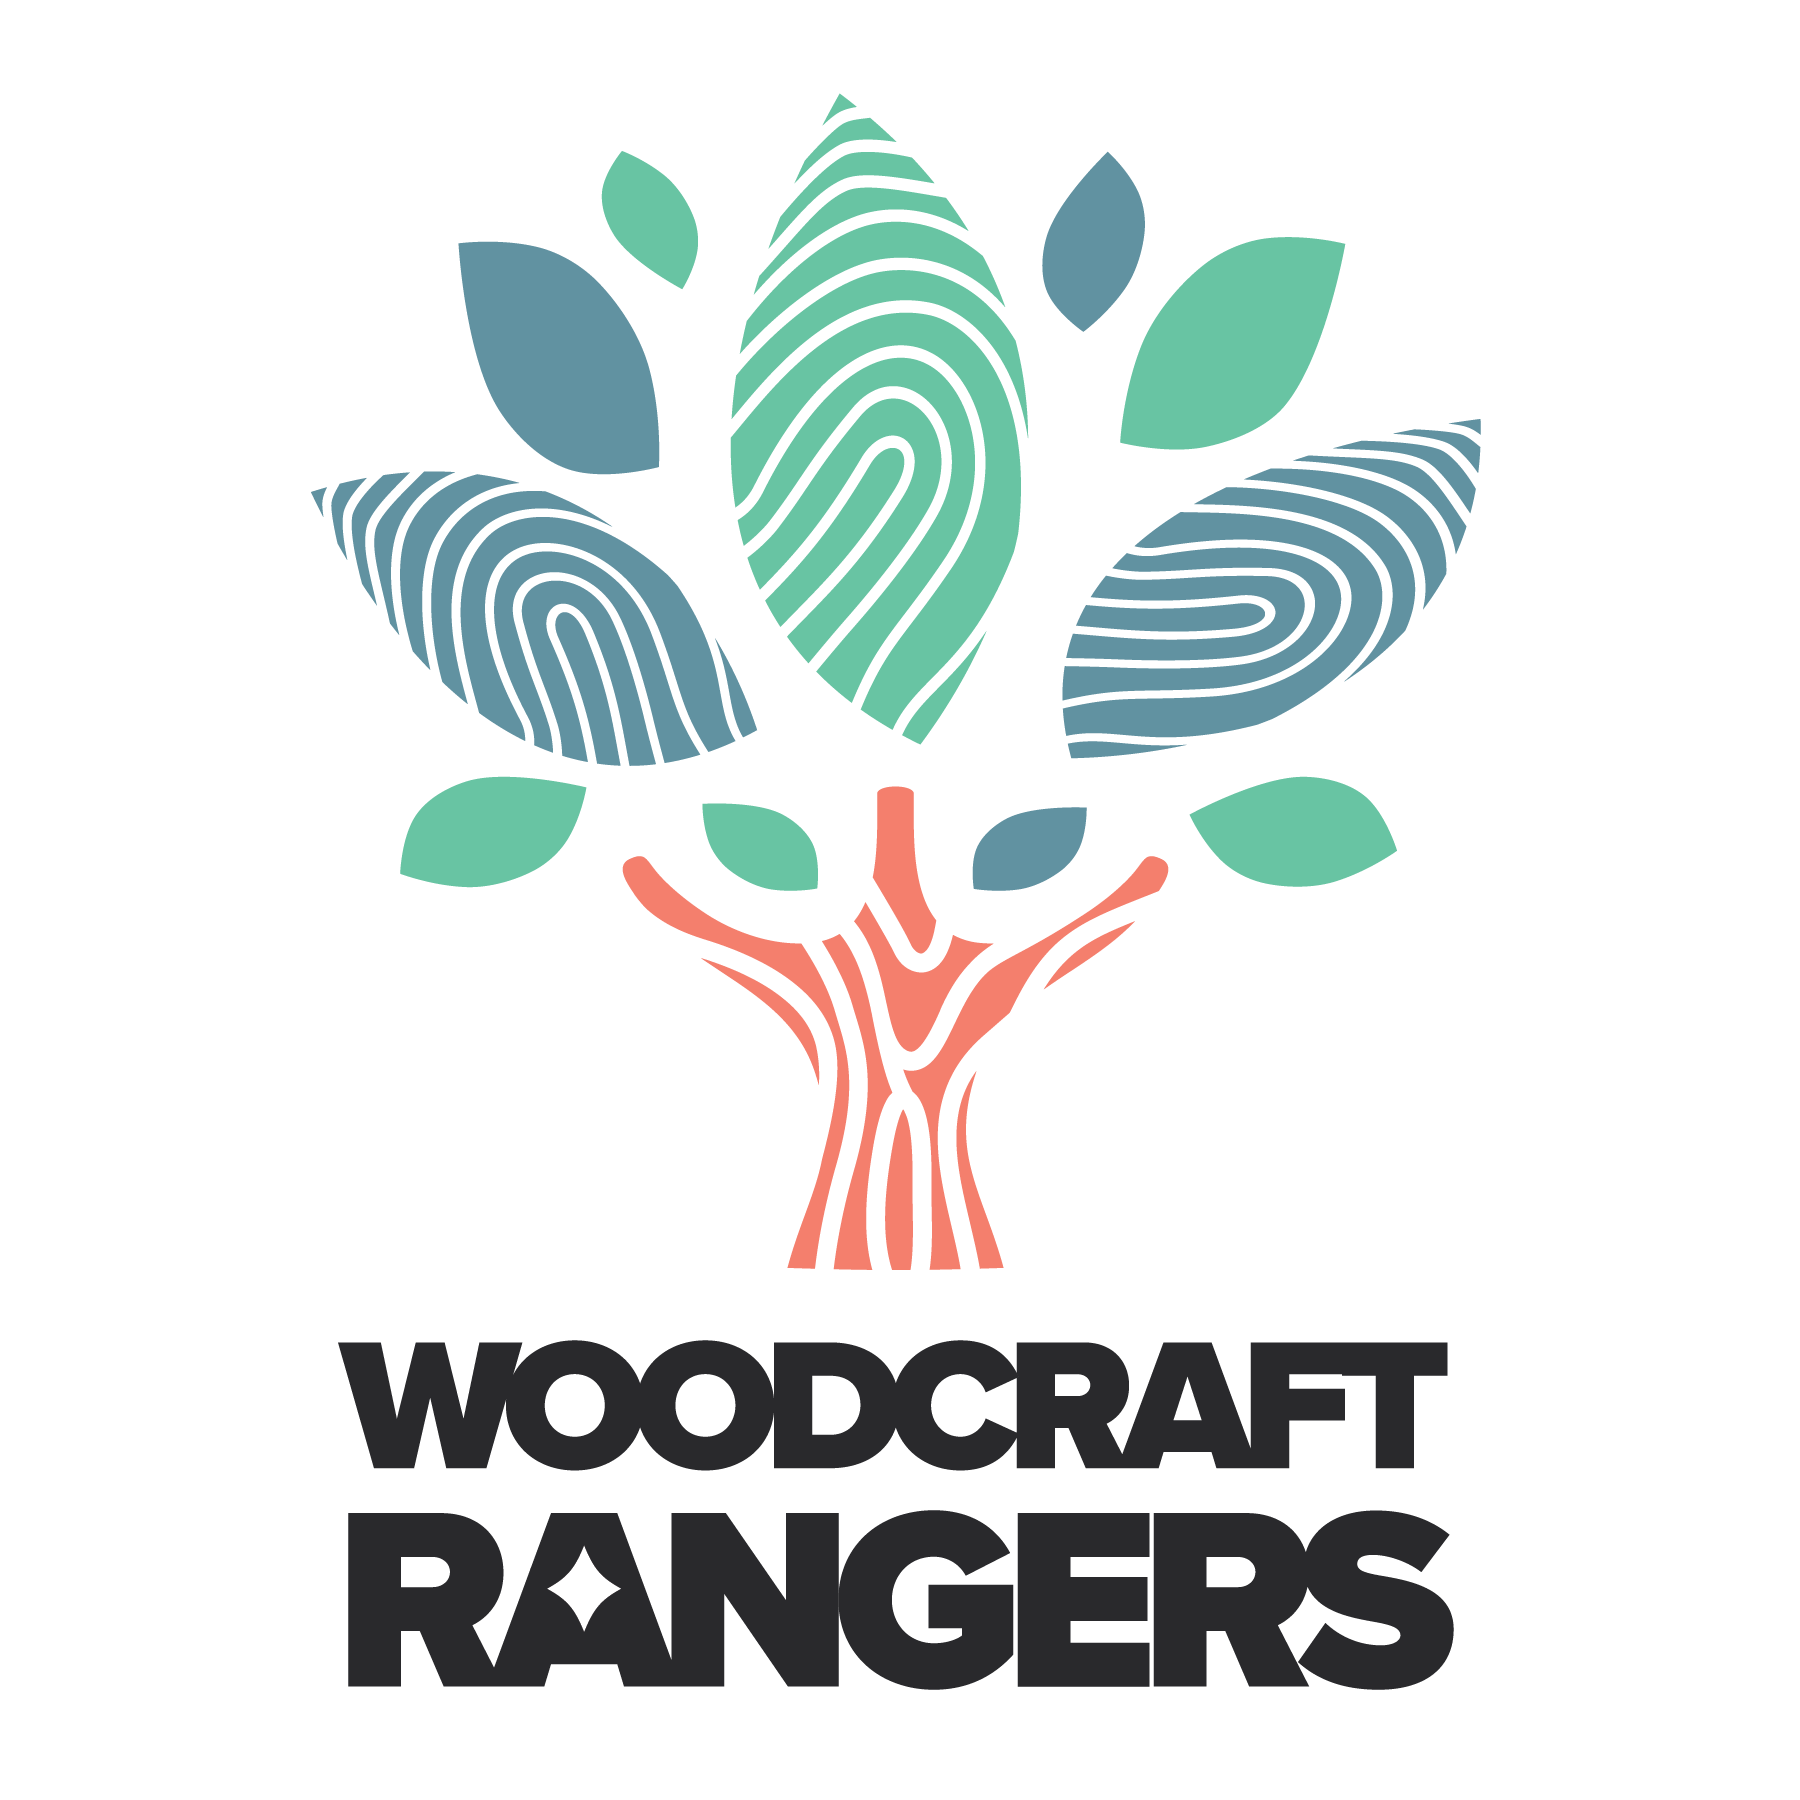 Youth Afterschool and Summer Programs in LA | Woodcraft Rangers